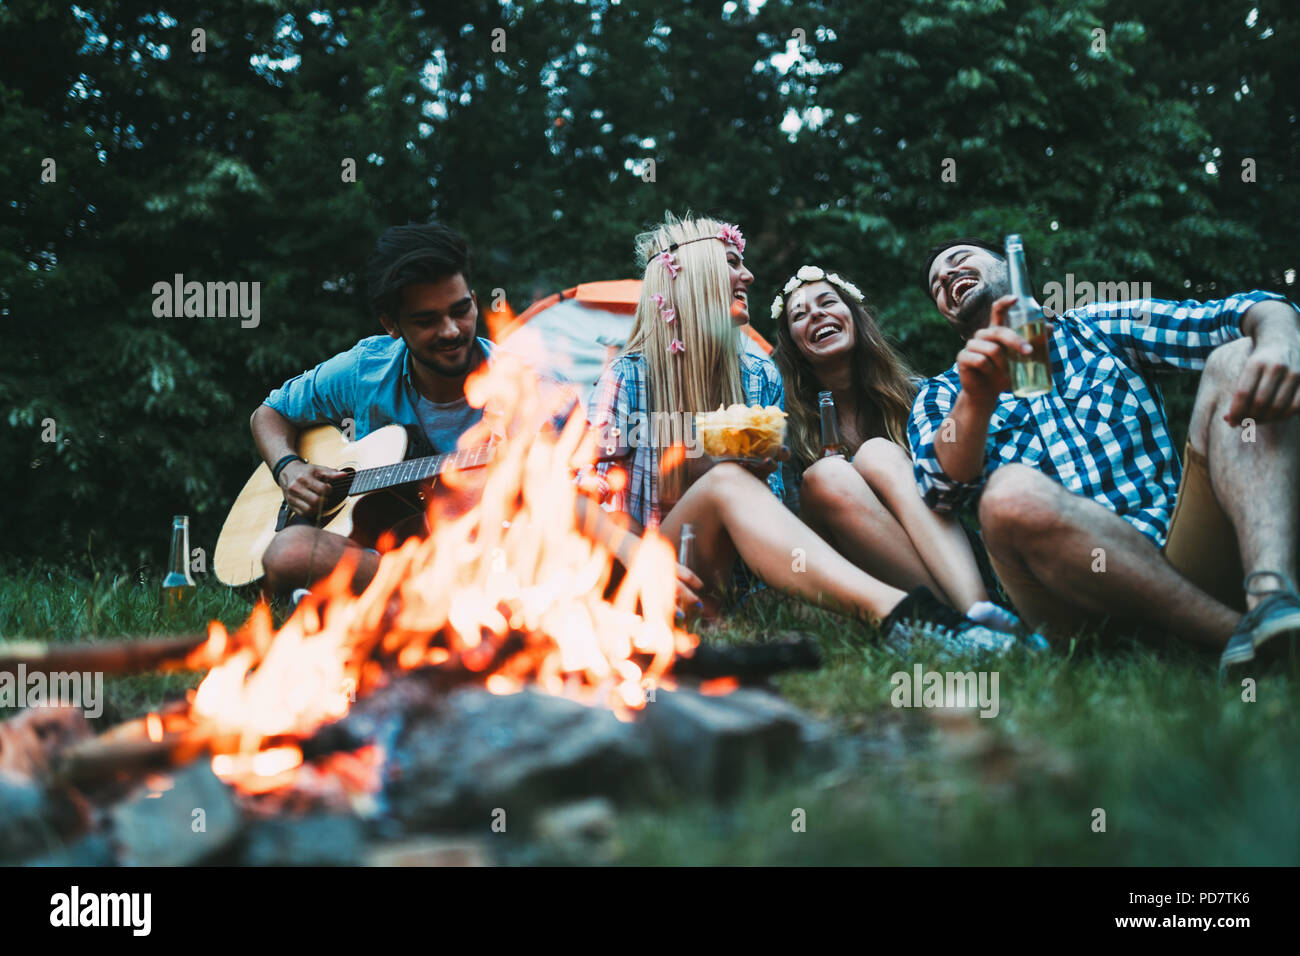 Cheerful young friends having fun by campfire - Stock Image